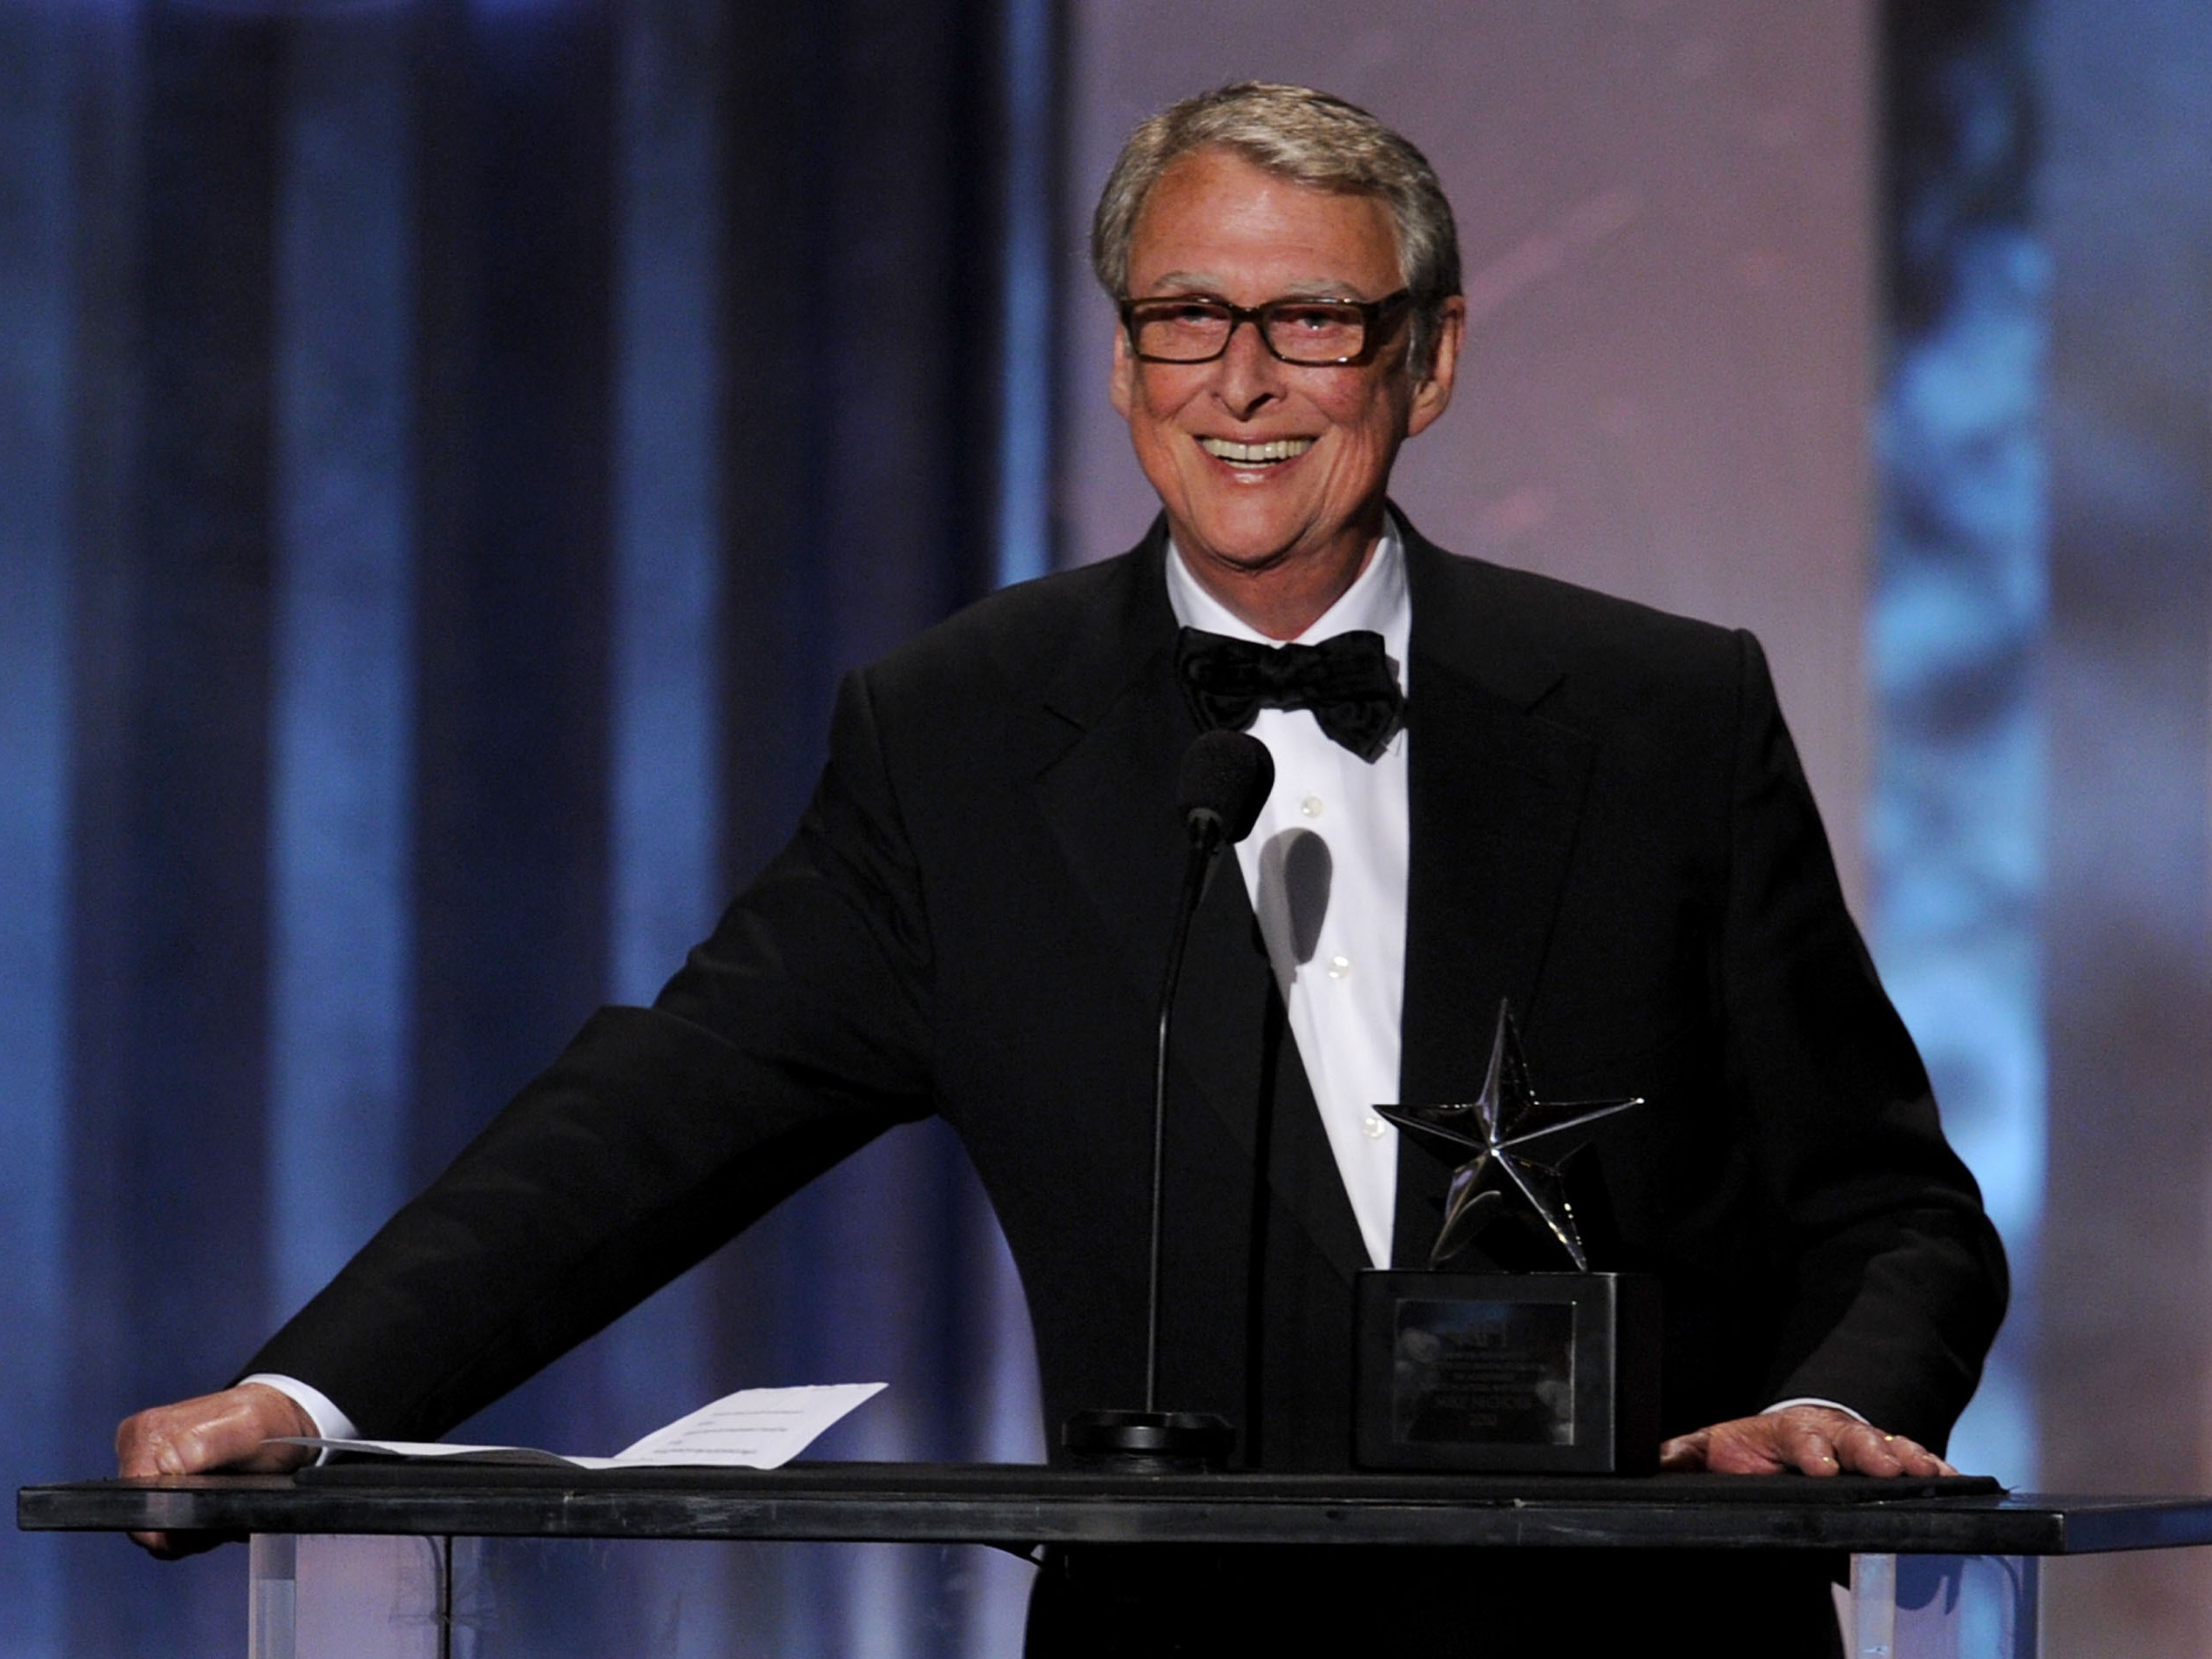 Mike Nichols was an ultimate Hollywood insider who won every major show business award directing for stage, film and TV. But his life in America began as an immigrant from Germany. Nichols was honored with an AFI Life Achievement Award in June 2010.